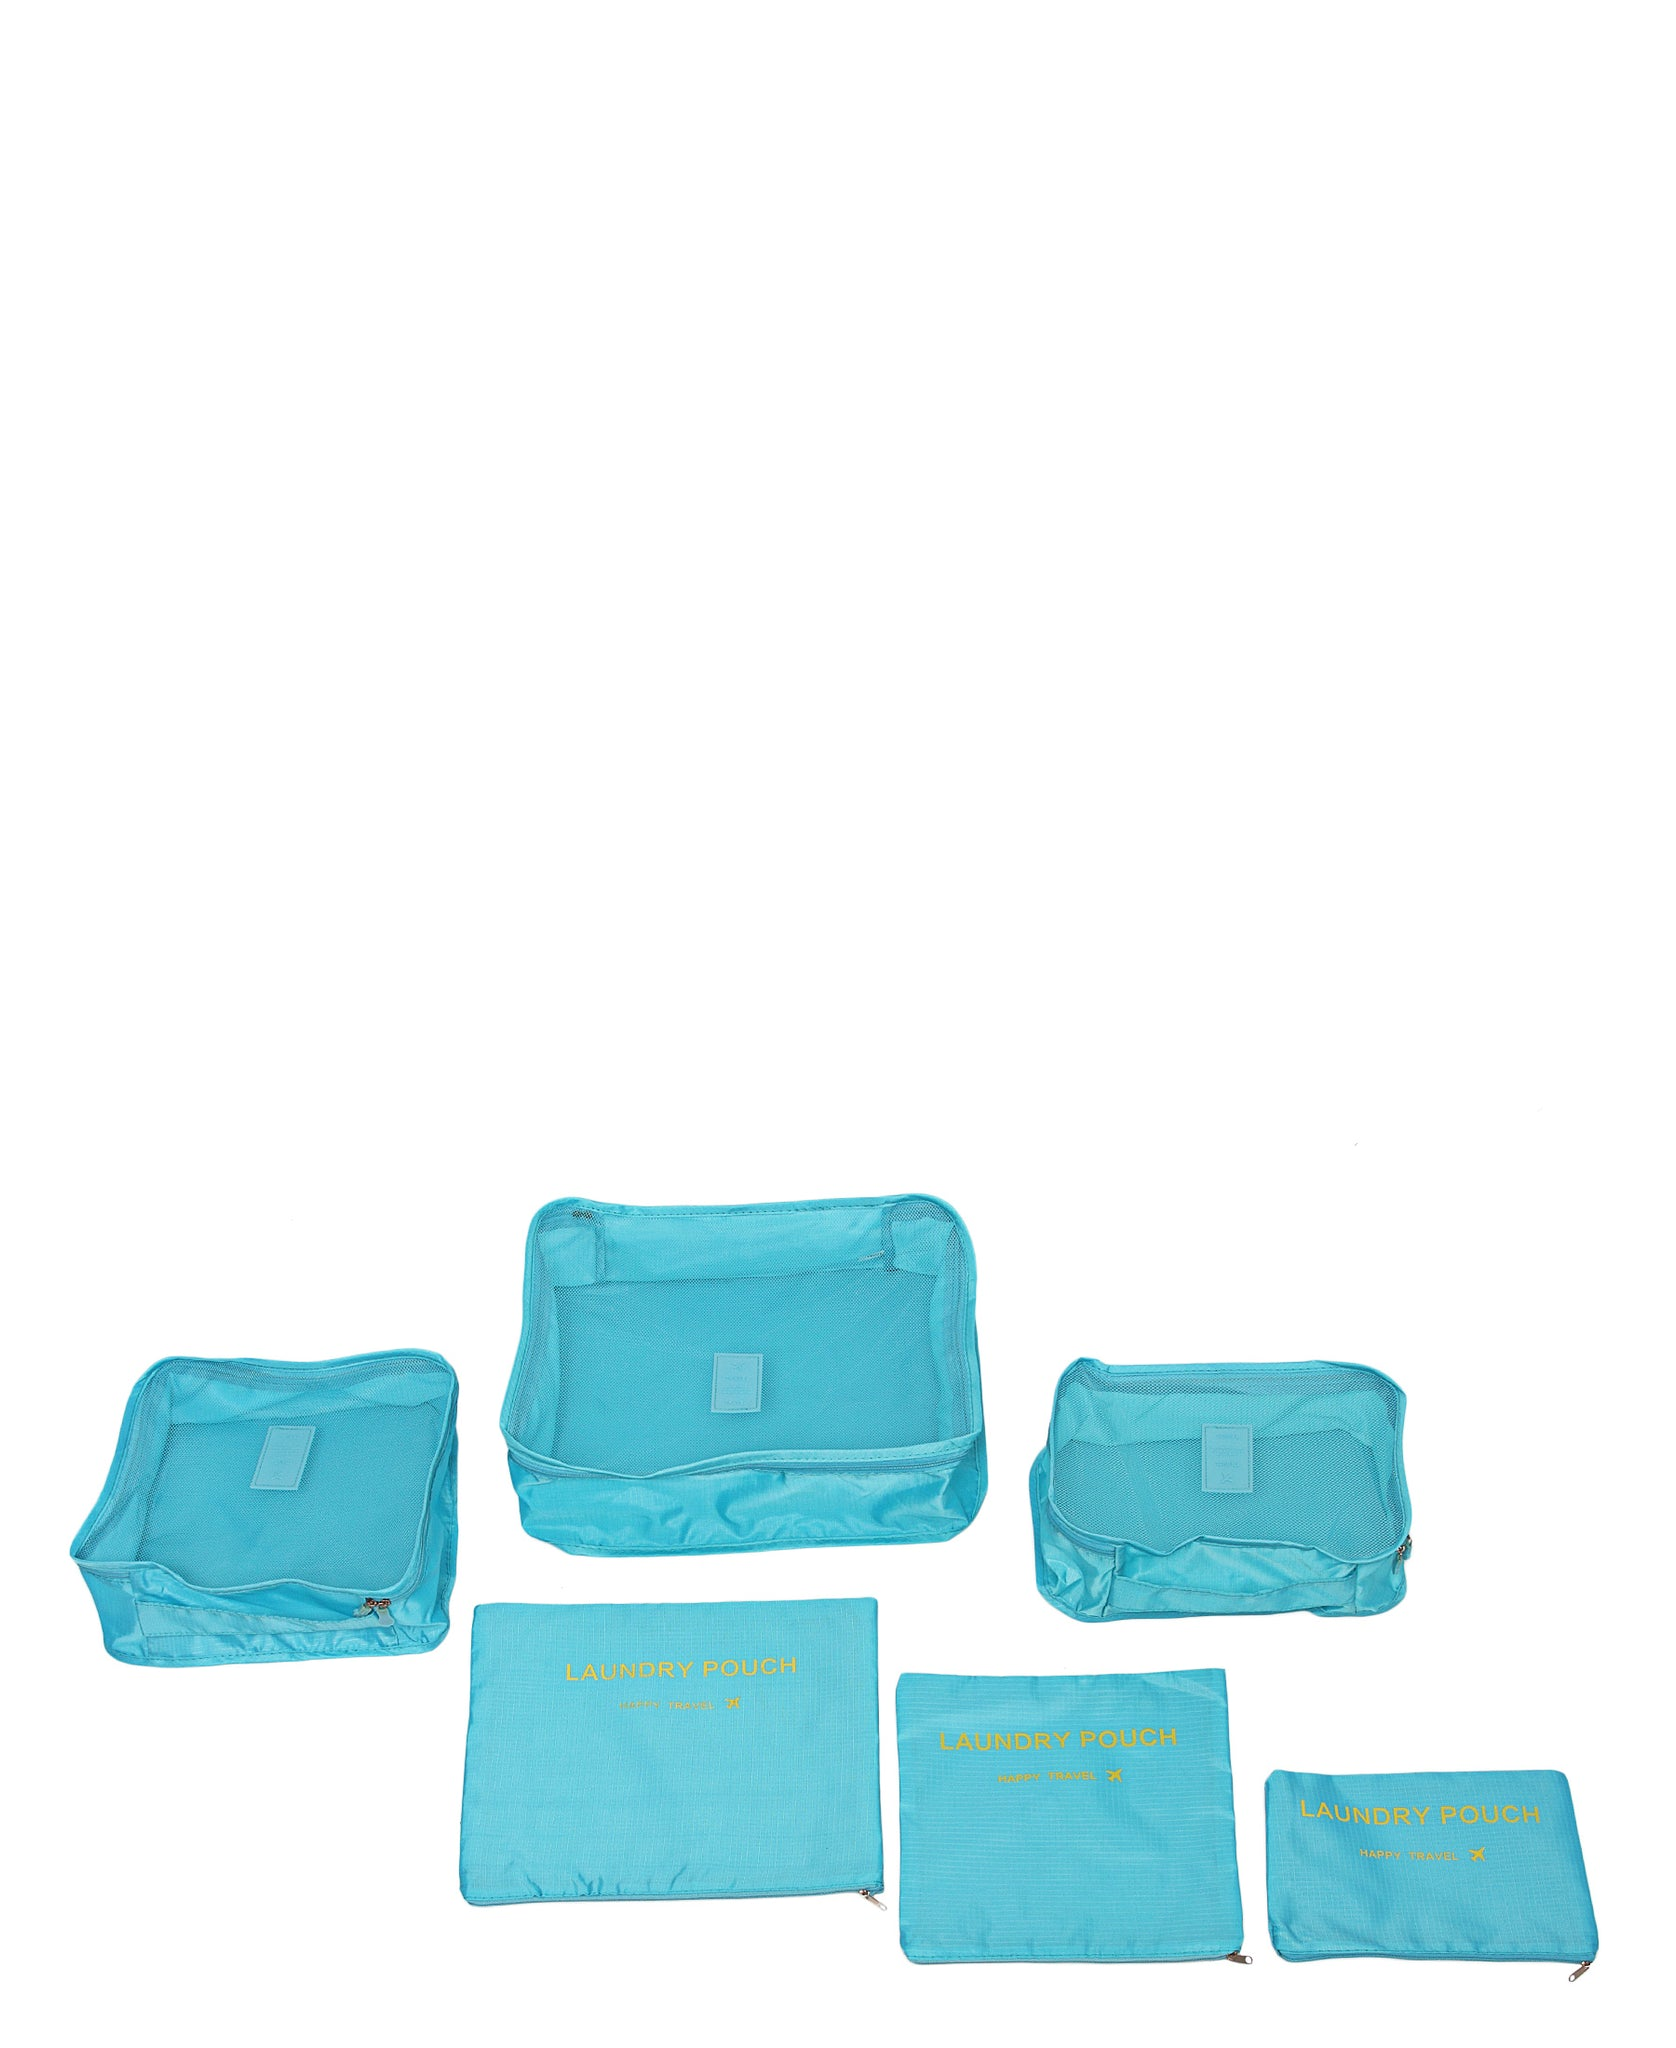 6 Piece Travel Bag Organiser - Blue